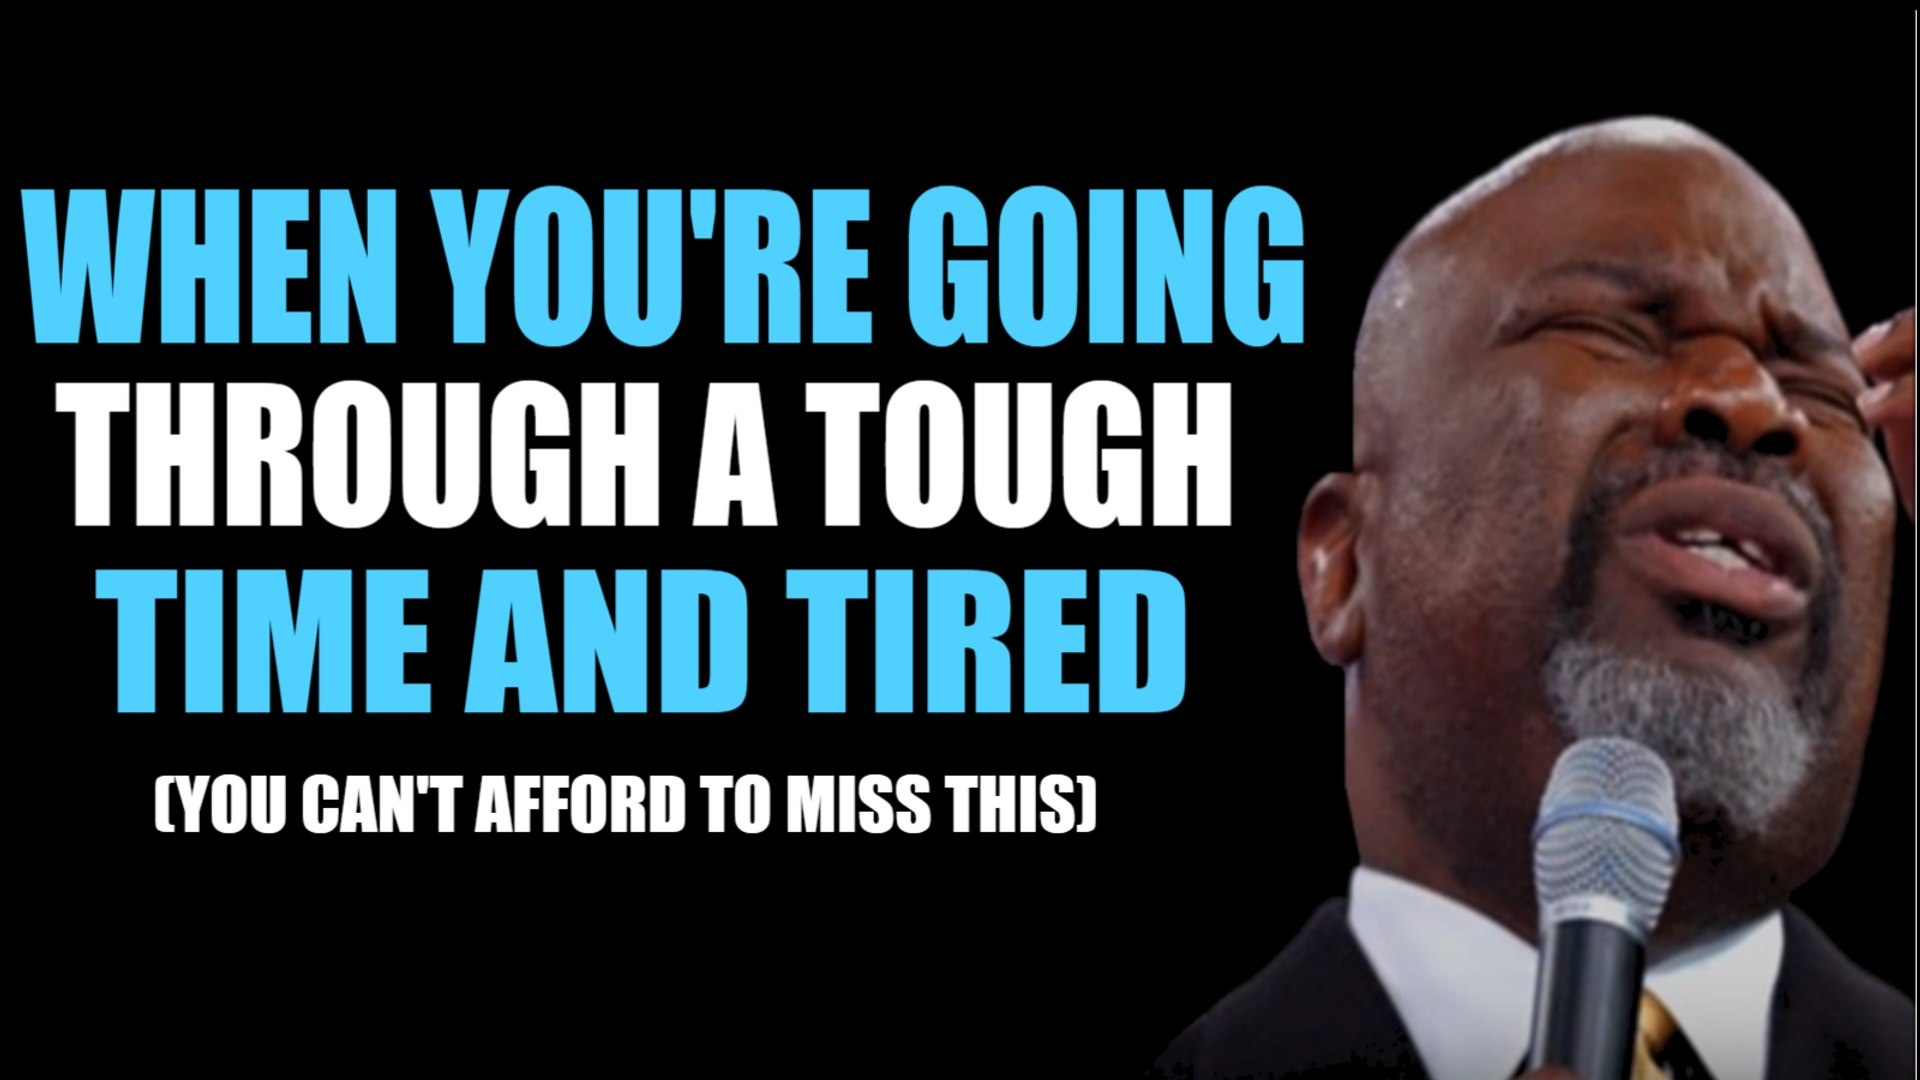 When You Are Through A Tough Time And Tired (MUST WATCH) By T.D Jakes 2017